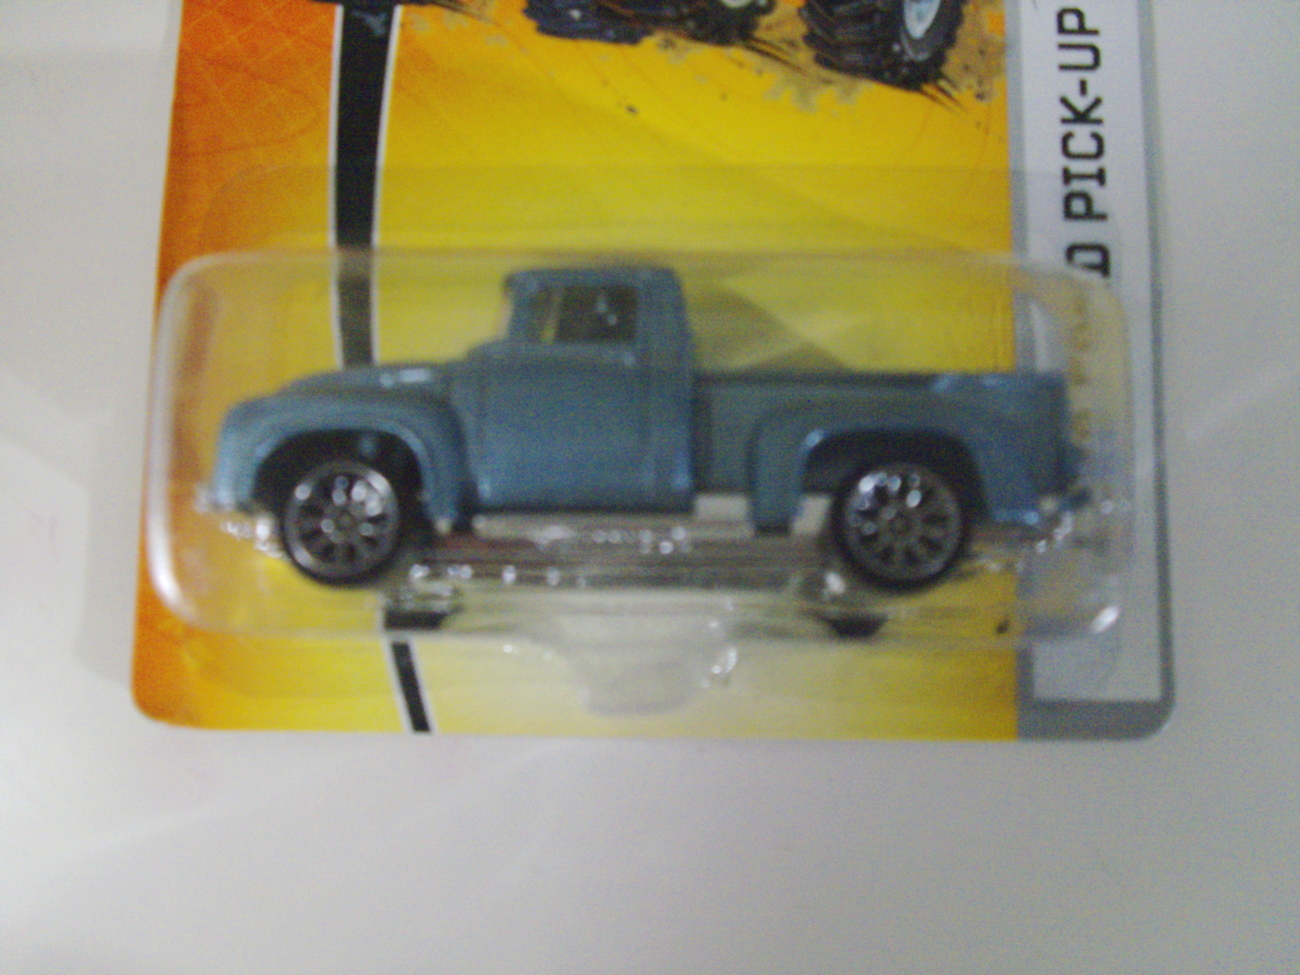 Matchbox Ready for Action MBX Metal 1956 Ford Pick-Up truck - New